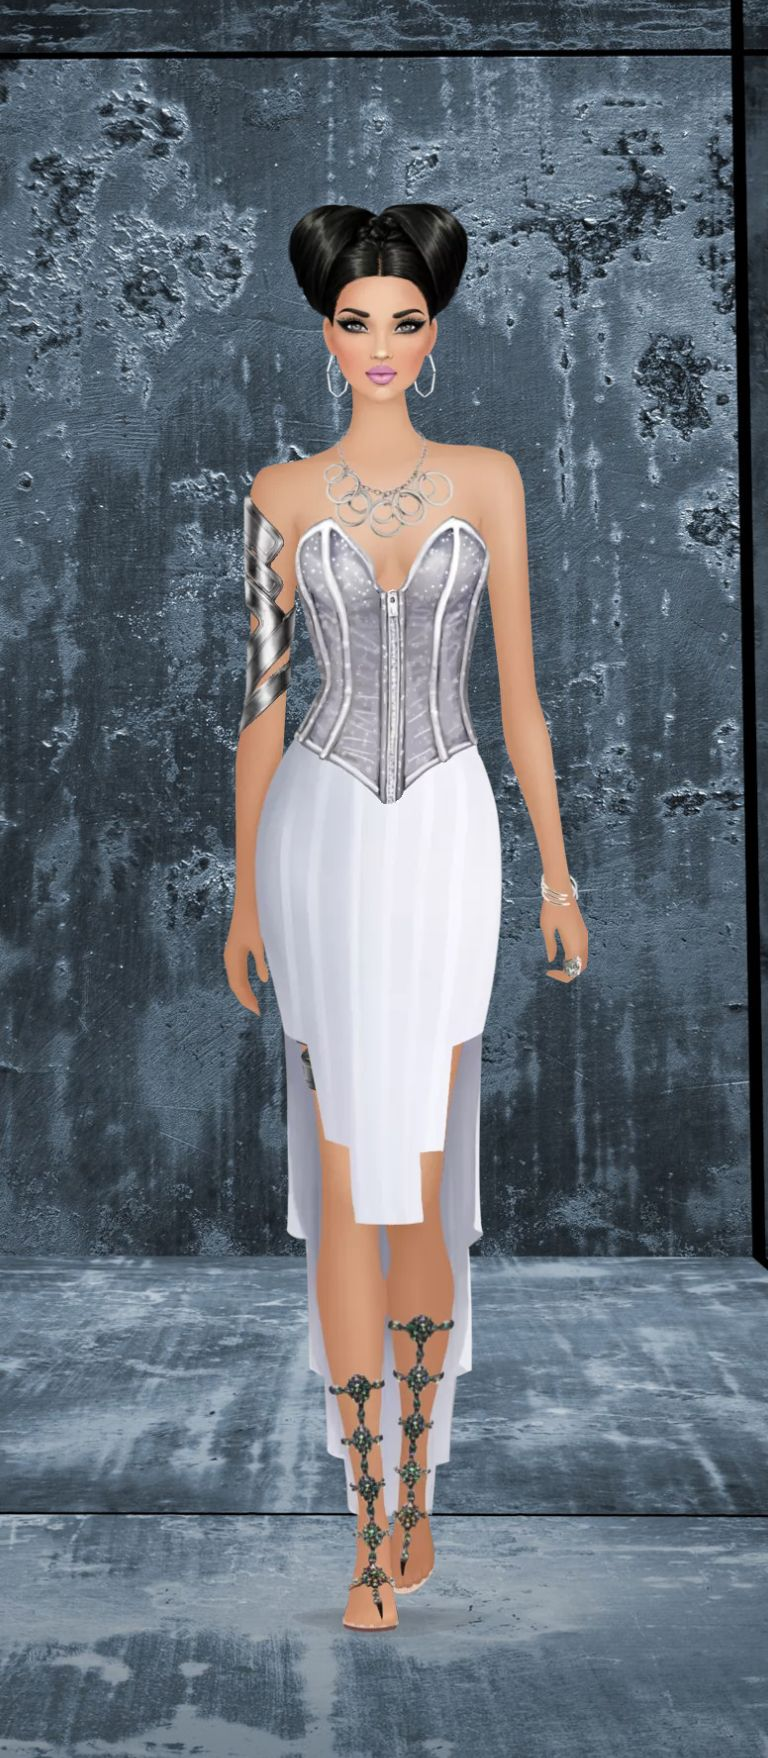 Bionic Angel (With images) Fashion, Covet fashion games